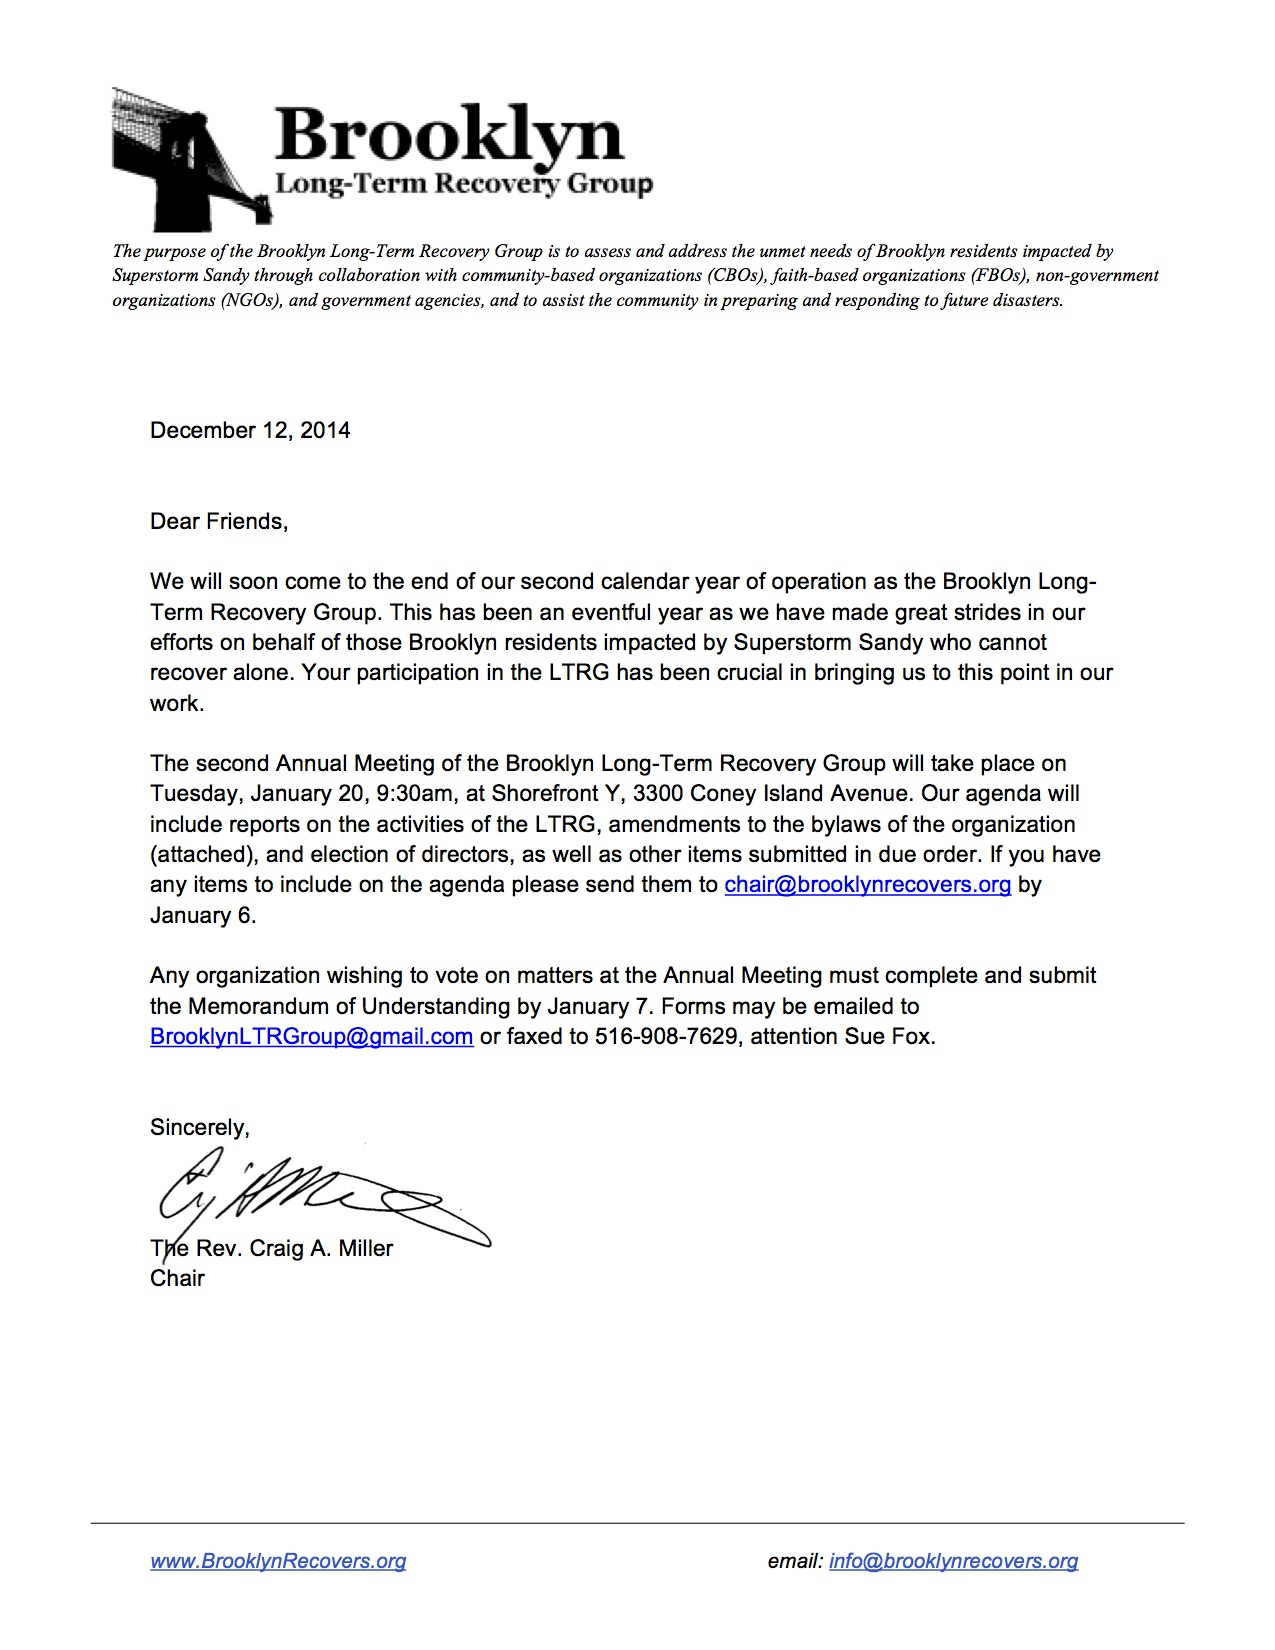 2014 Registration Letter Creative Writing